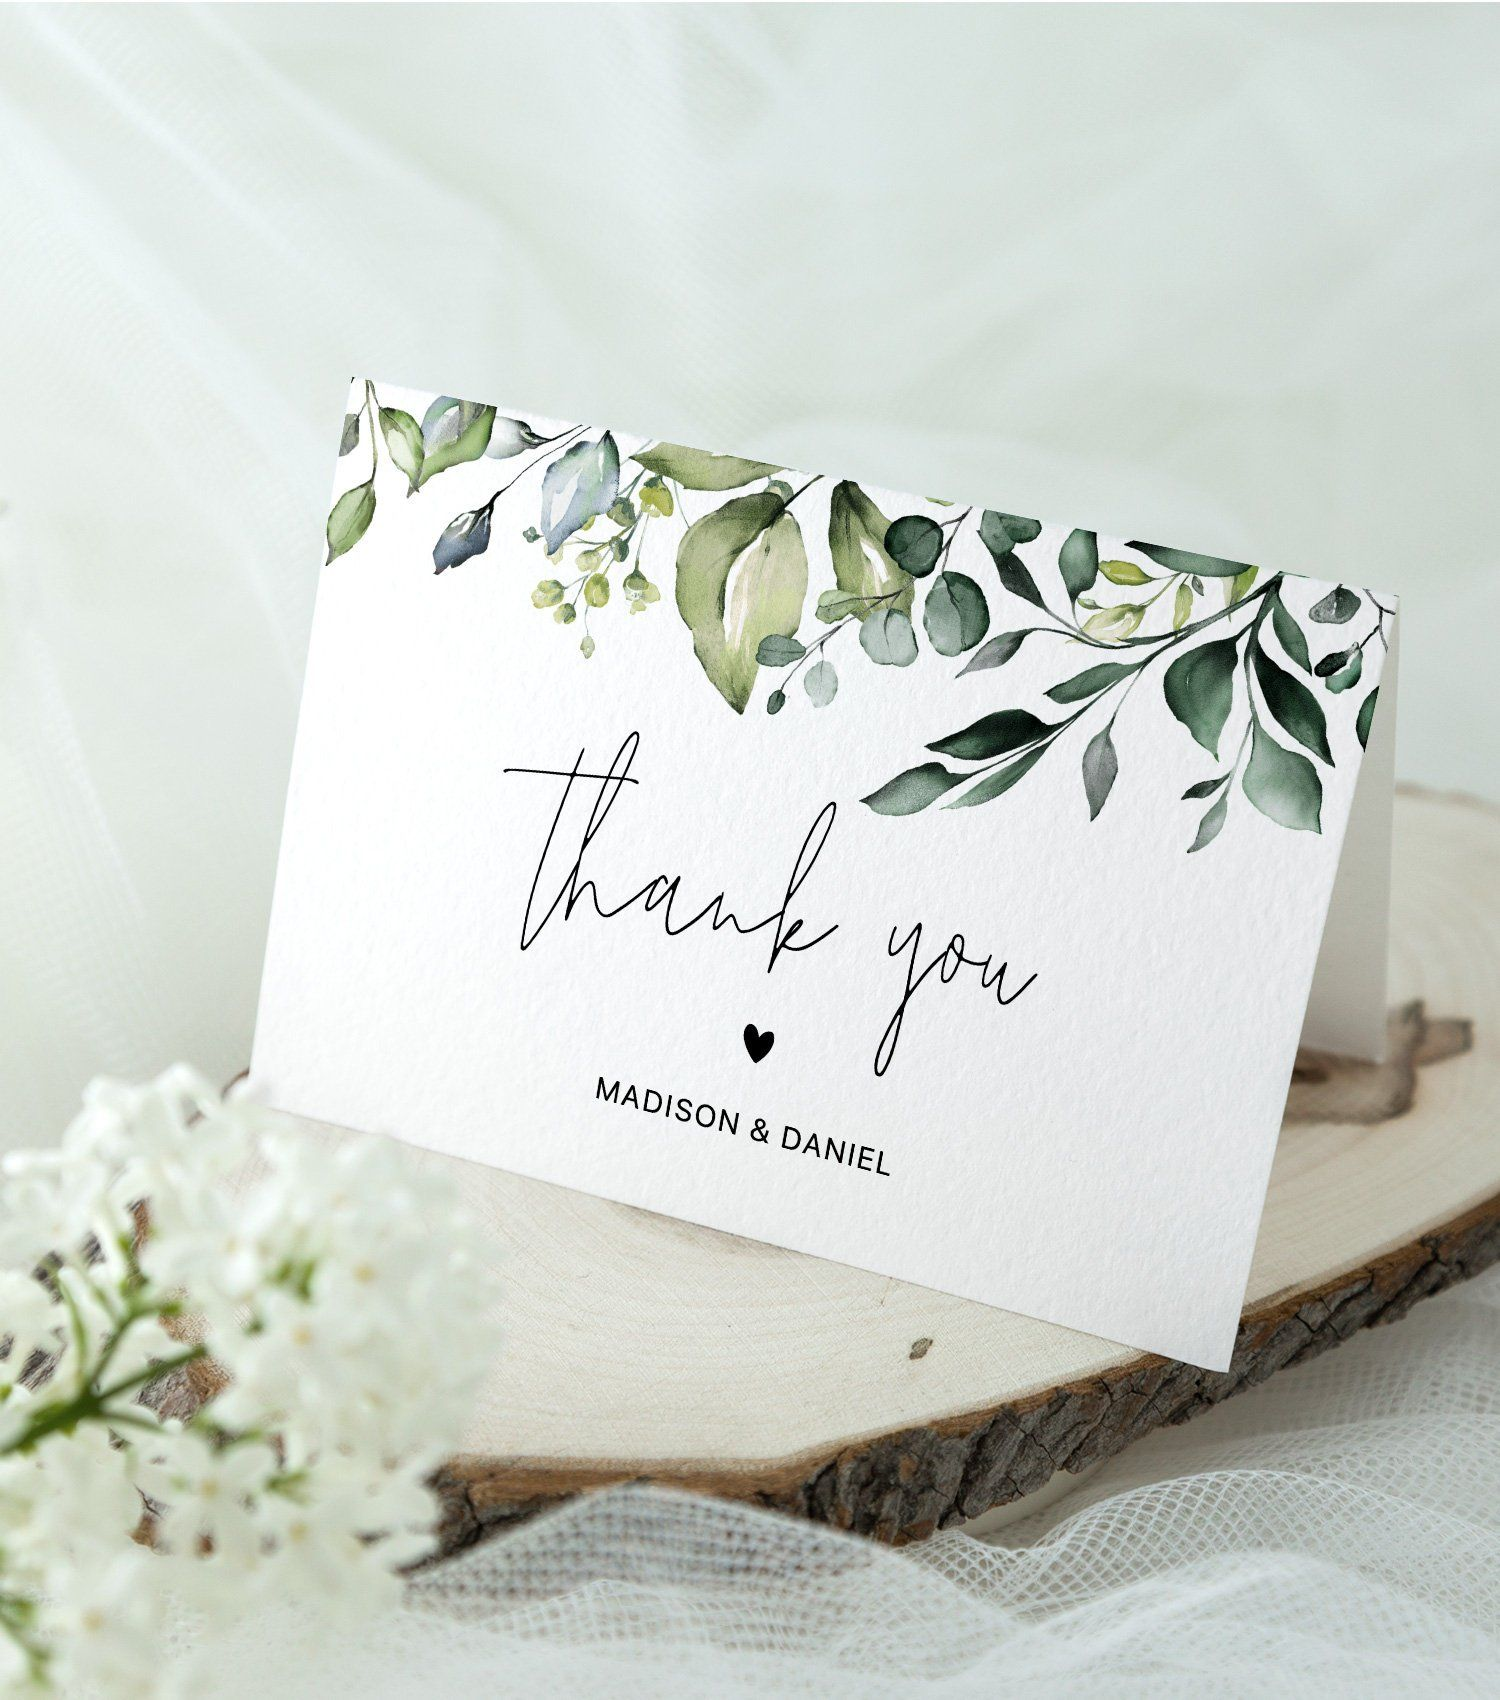 002 Fascinating Thank You Card Template Wedding Inspiration  Free Printable PublisherFull